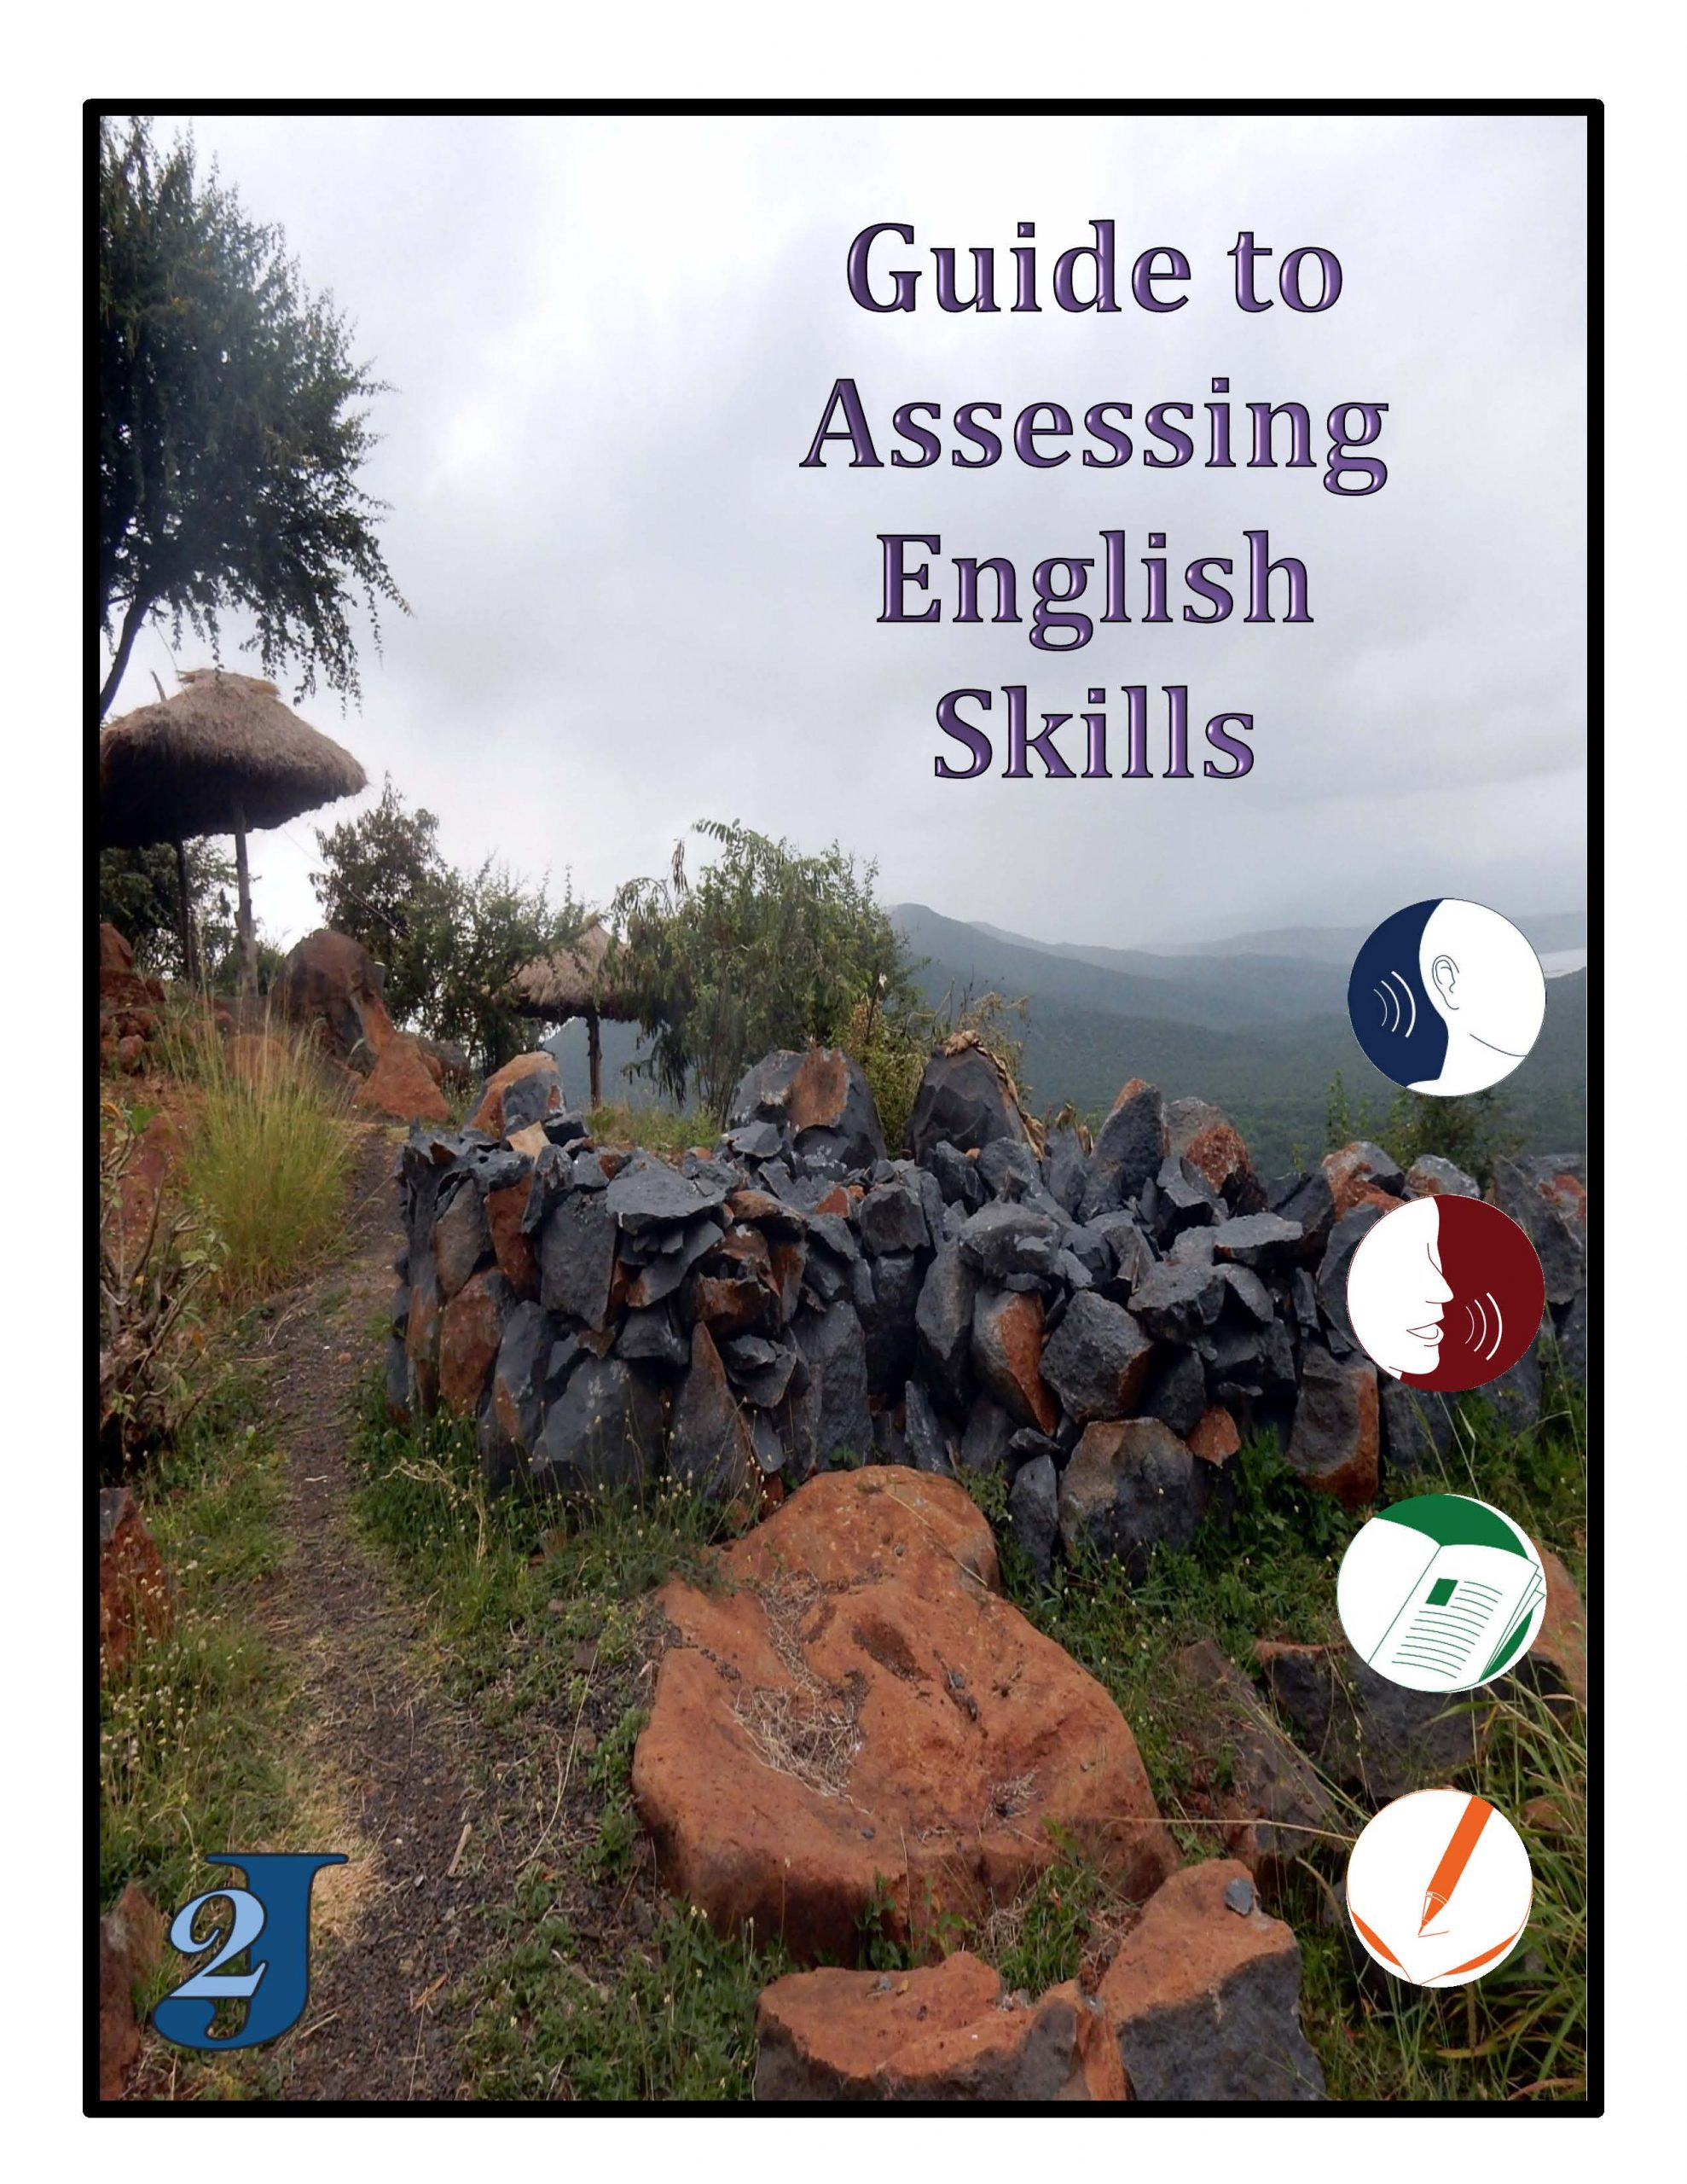 Guide to Assessing English Skills